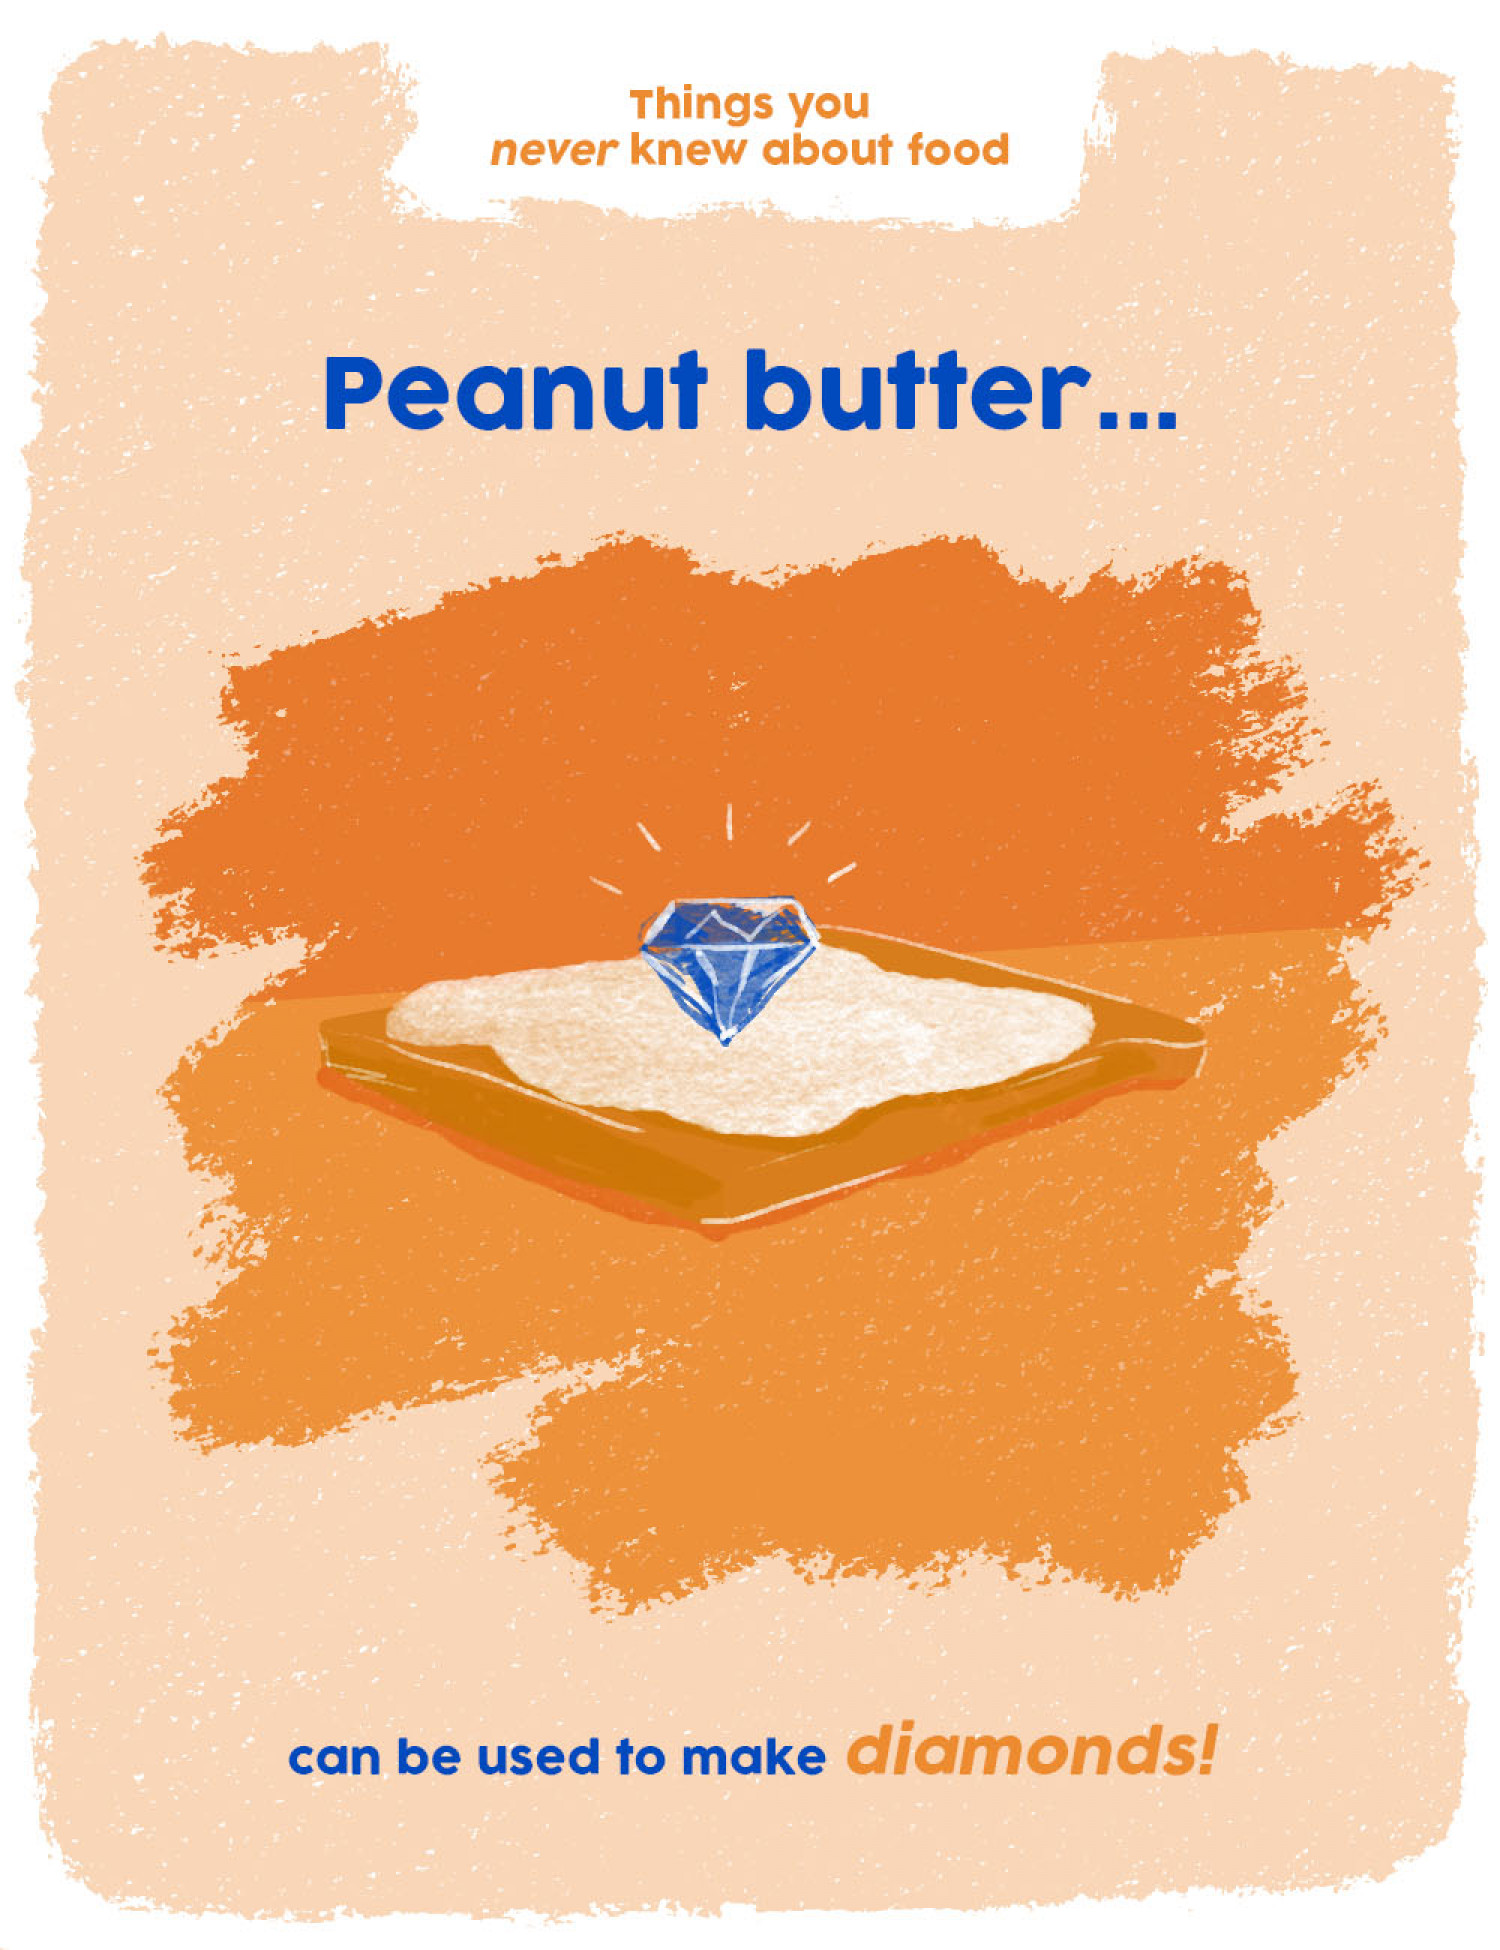 Things You Didn't Know About Food: Peanut Butter Infographic